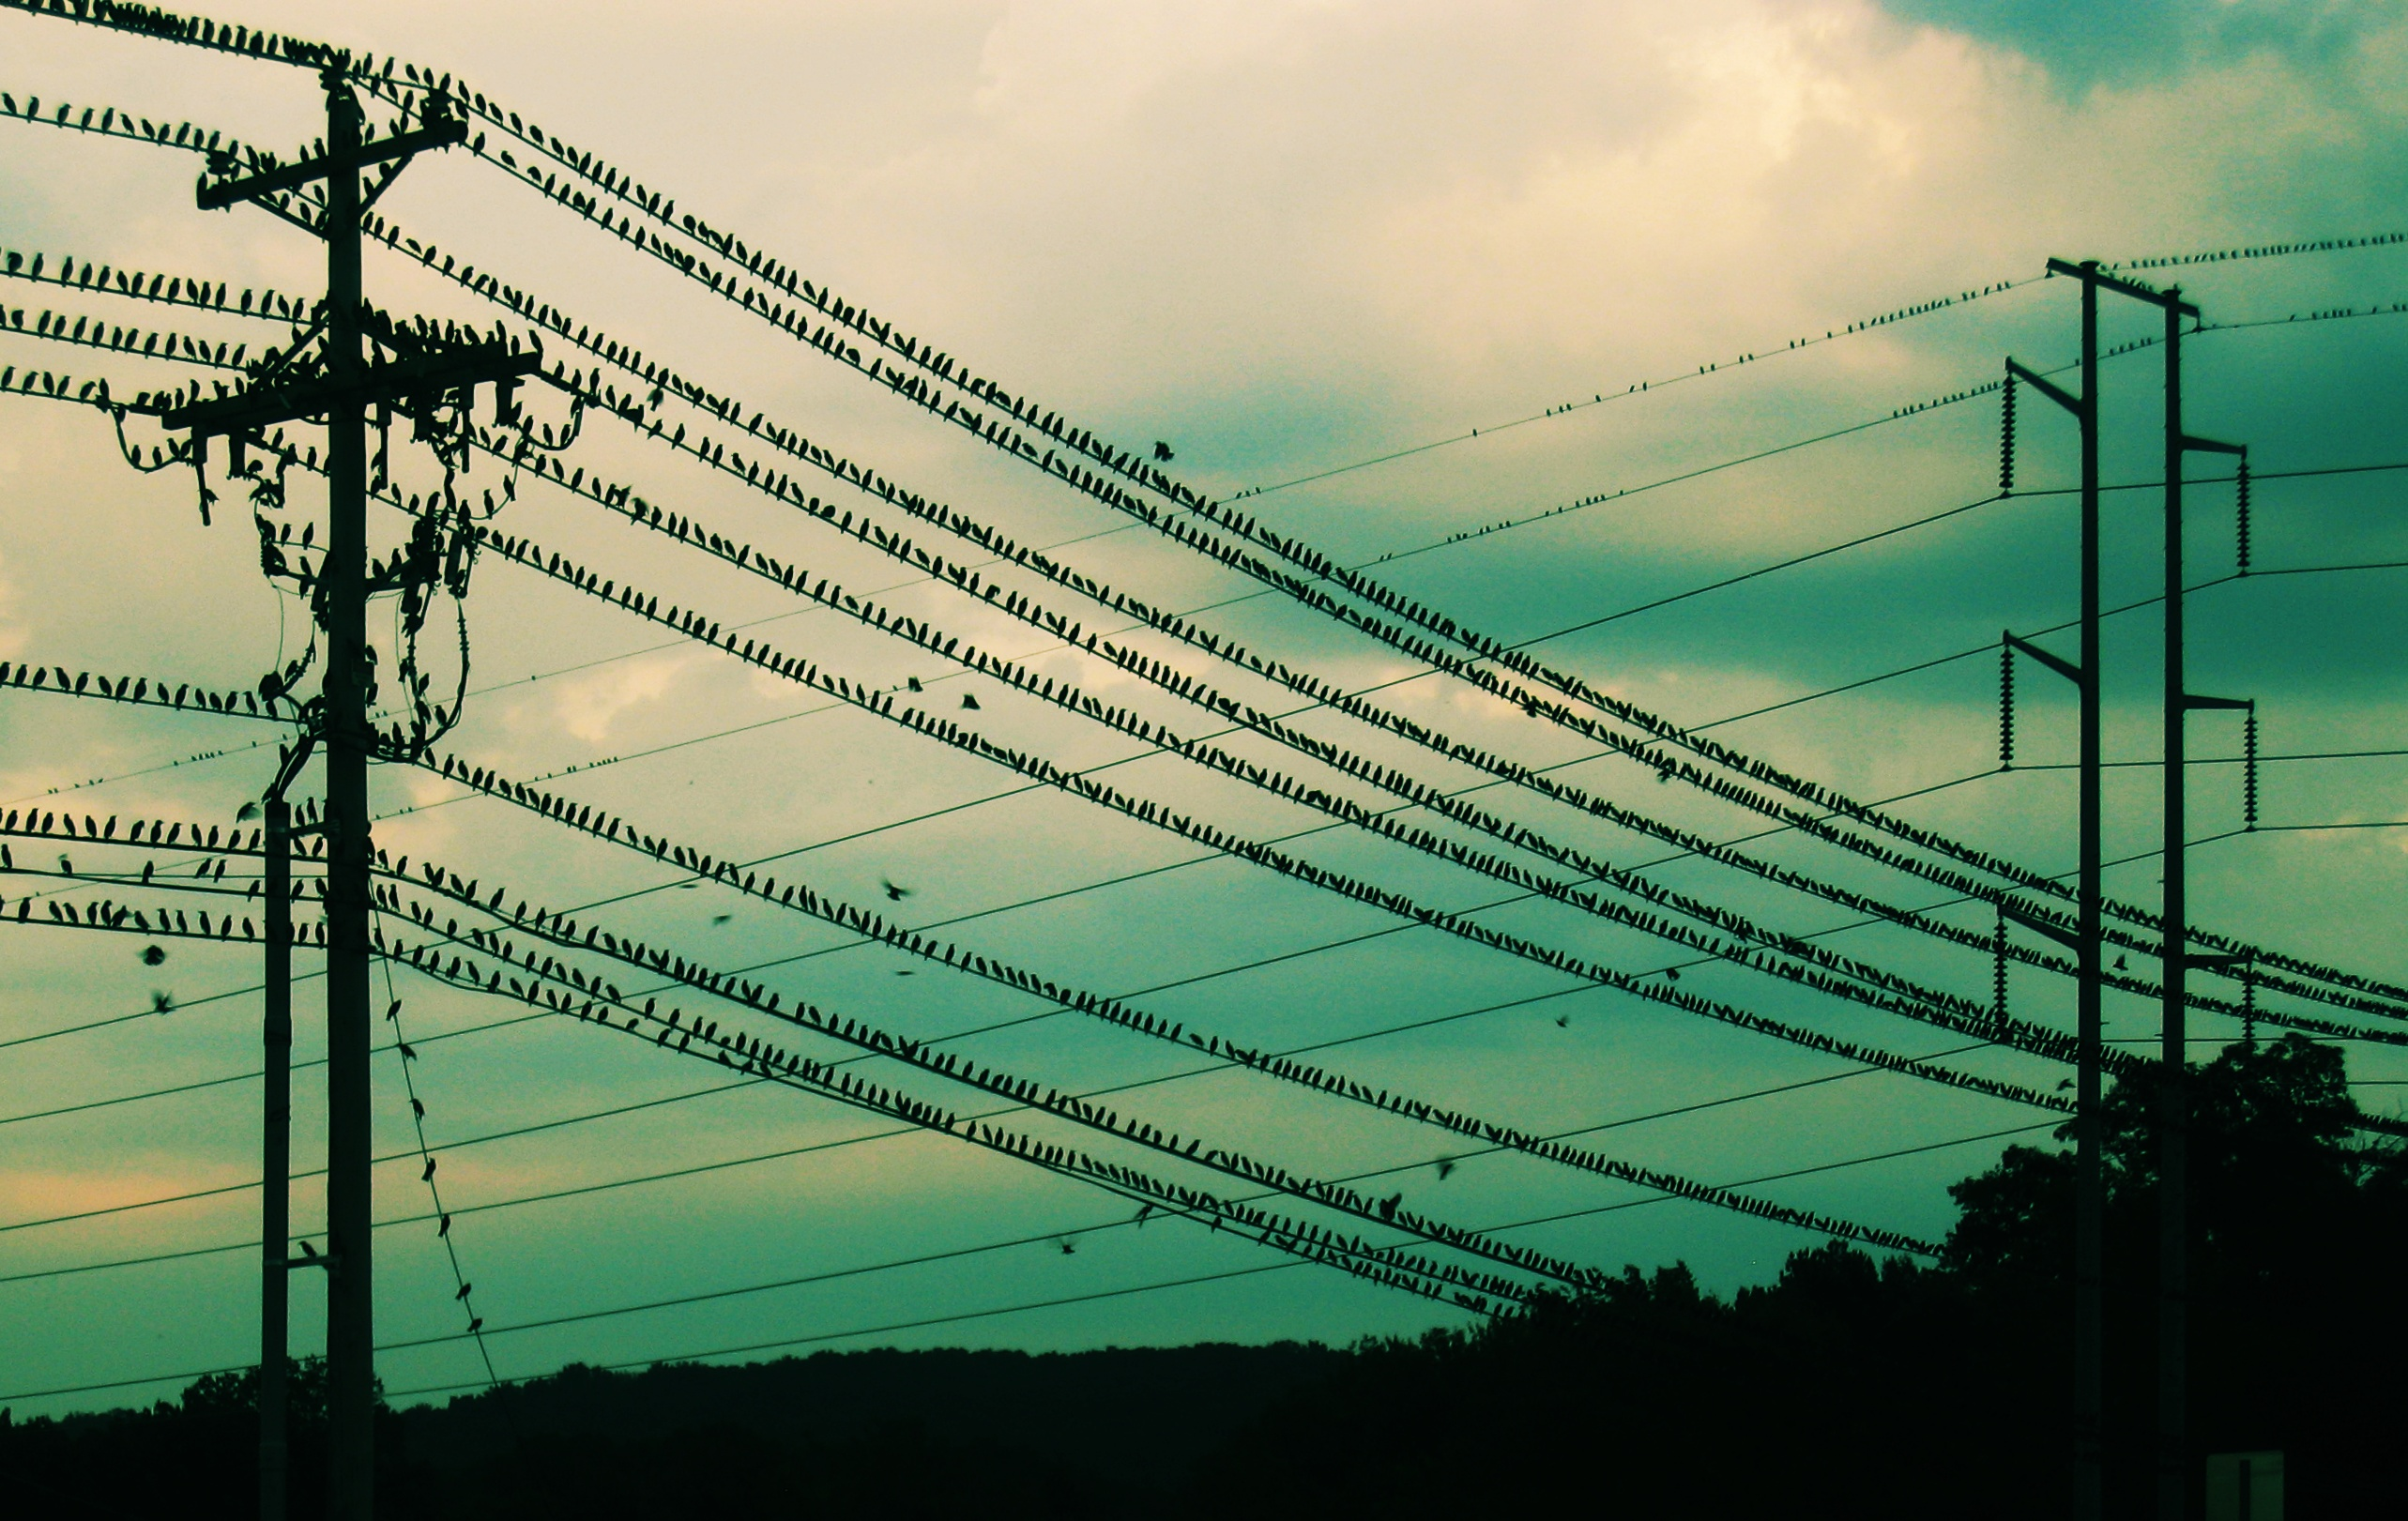 how do birds sit on power lines without getting